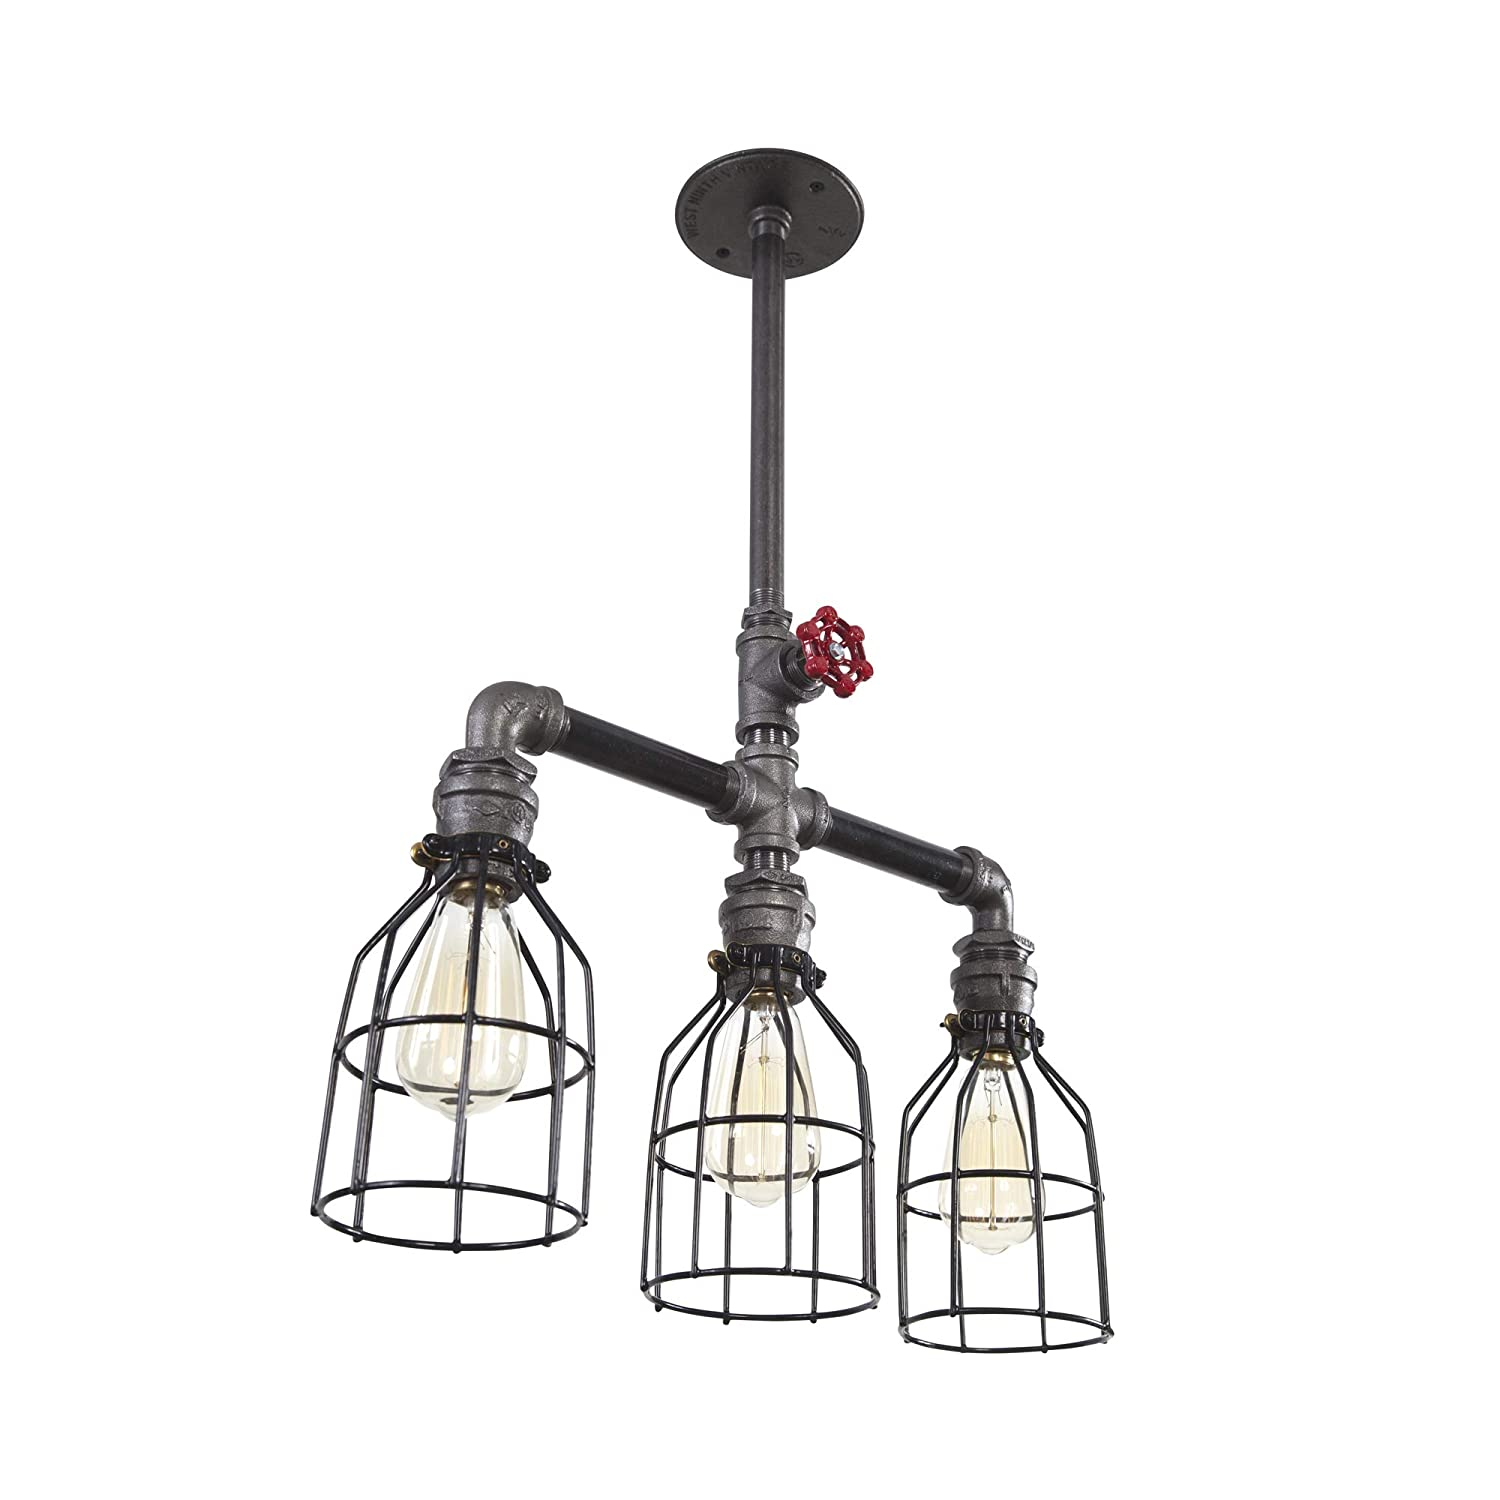 West Ninth Vintage Iron Pipe Industrial chandelier 3 Lights w Cages